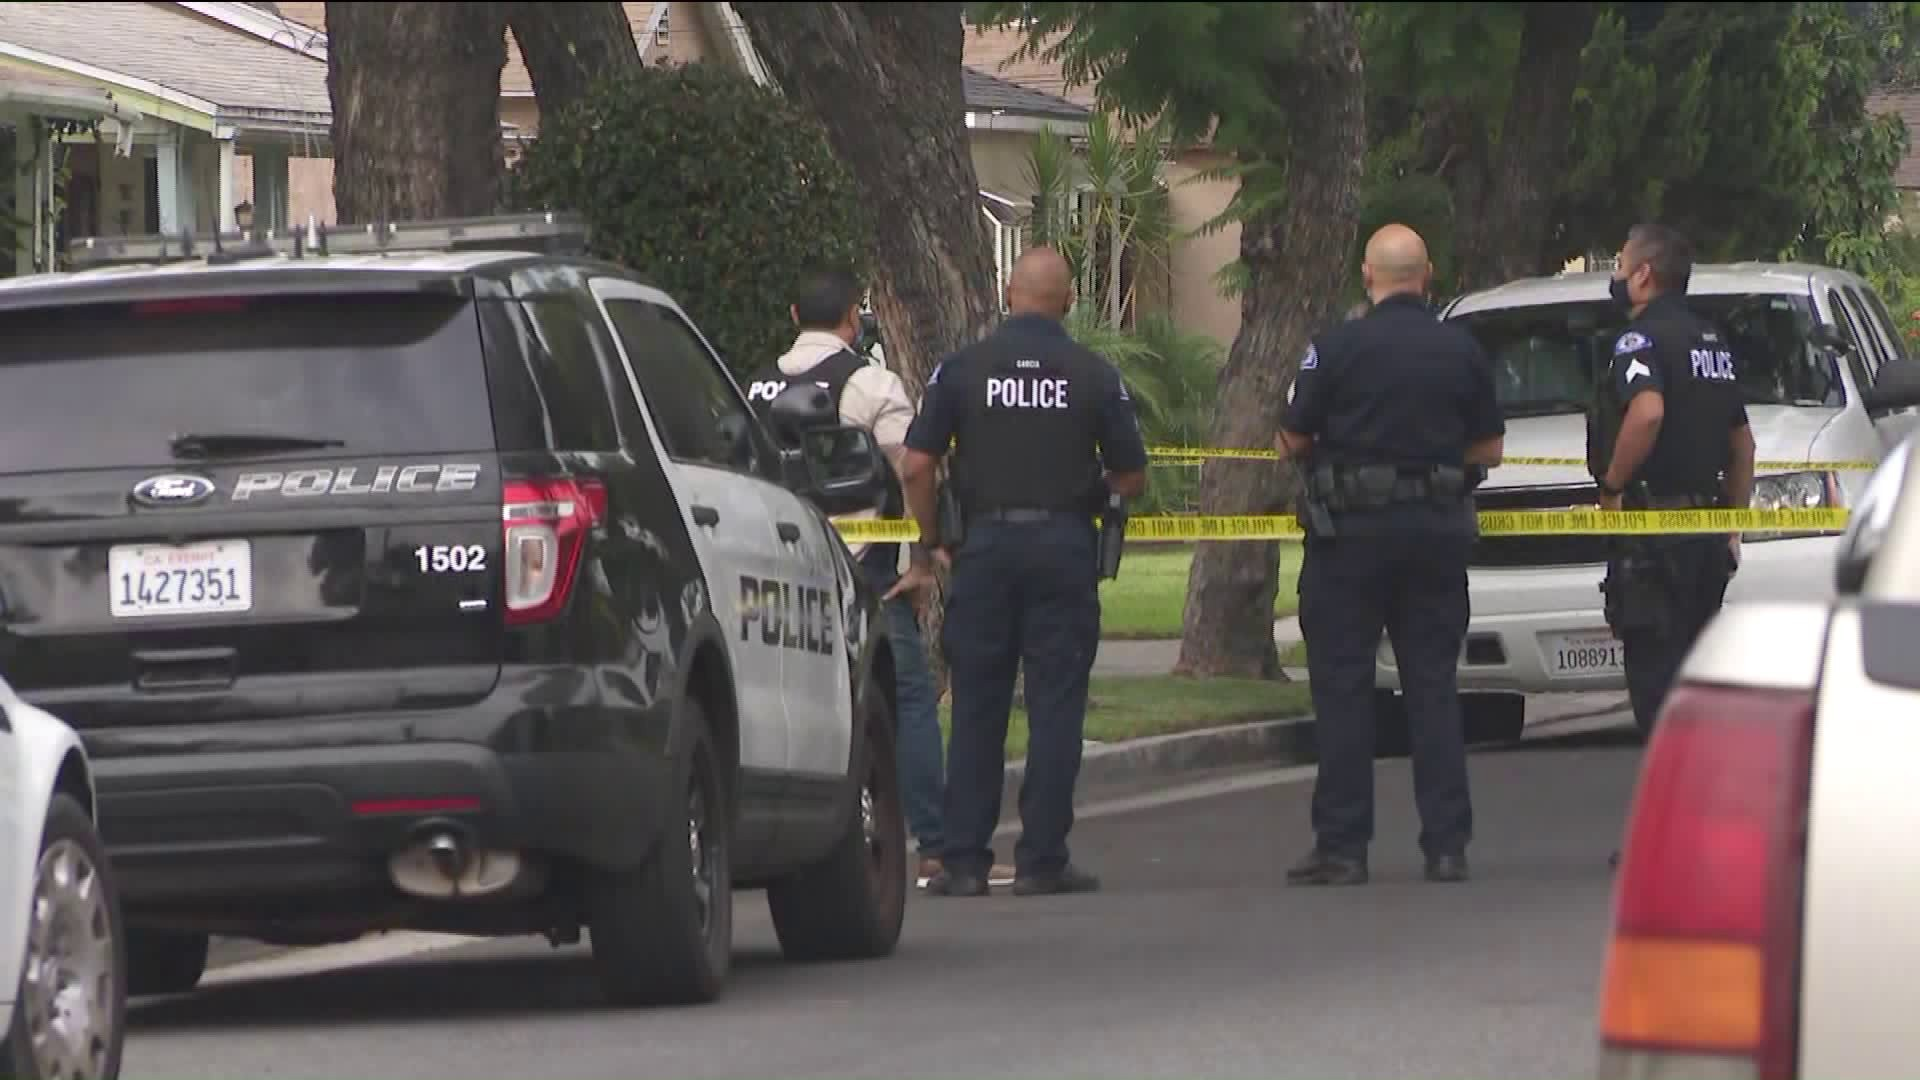 An investigation was underway in a Bell after a woman was fatally shot in Bell on Sept. 1, 2020. (KTLA)